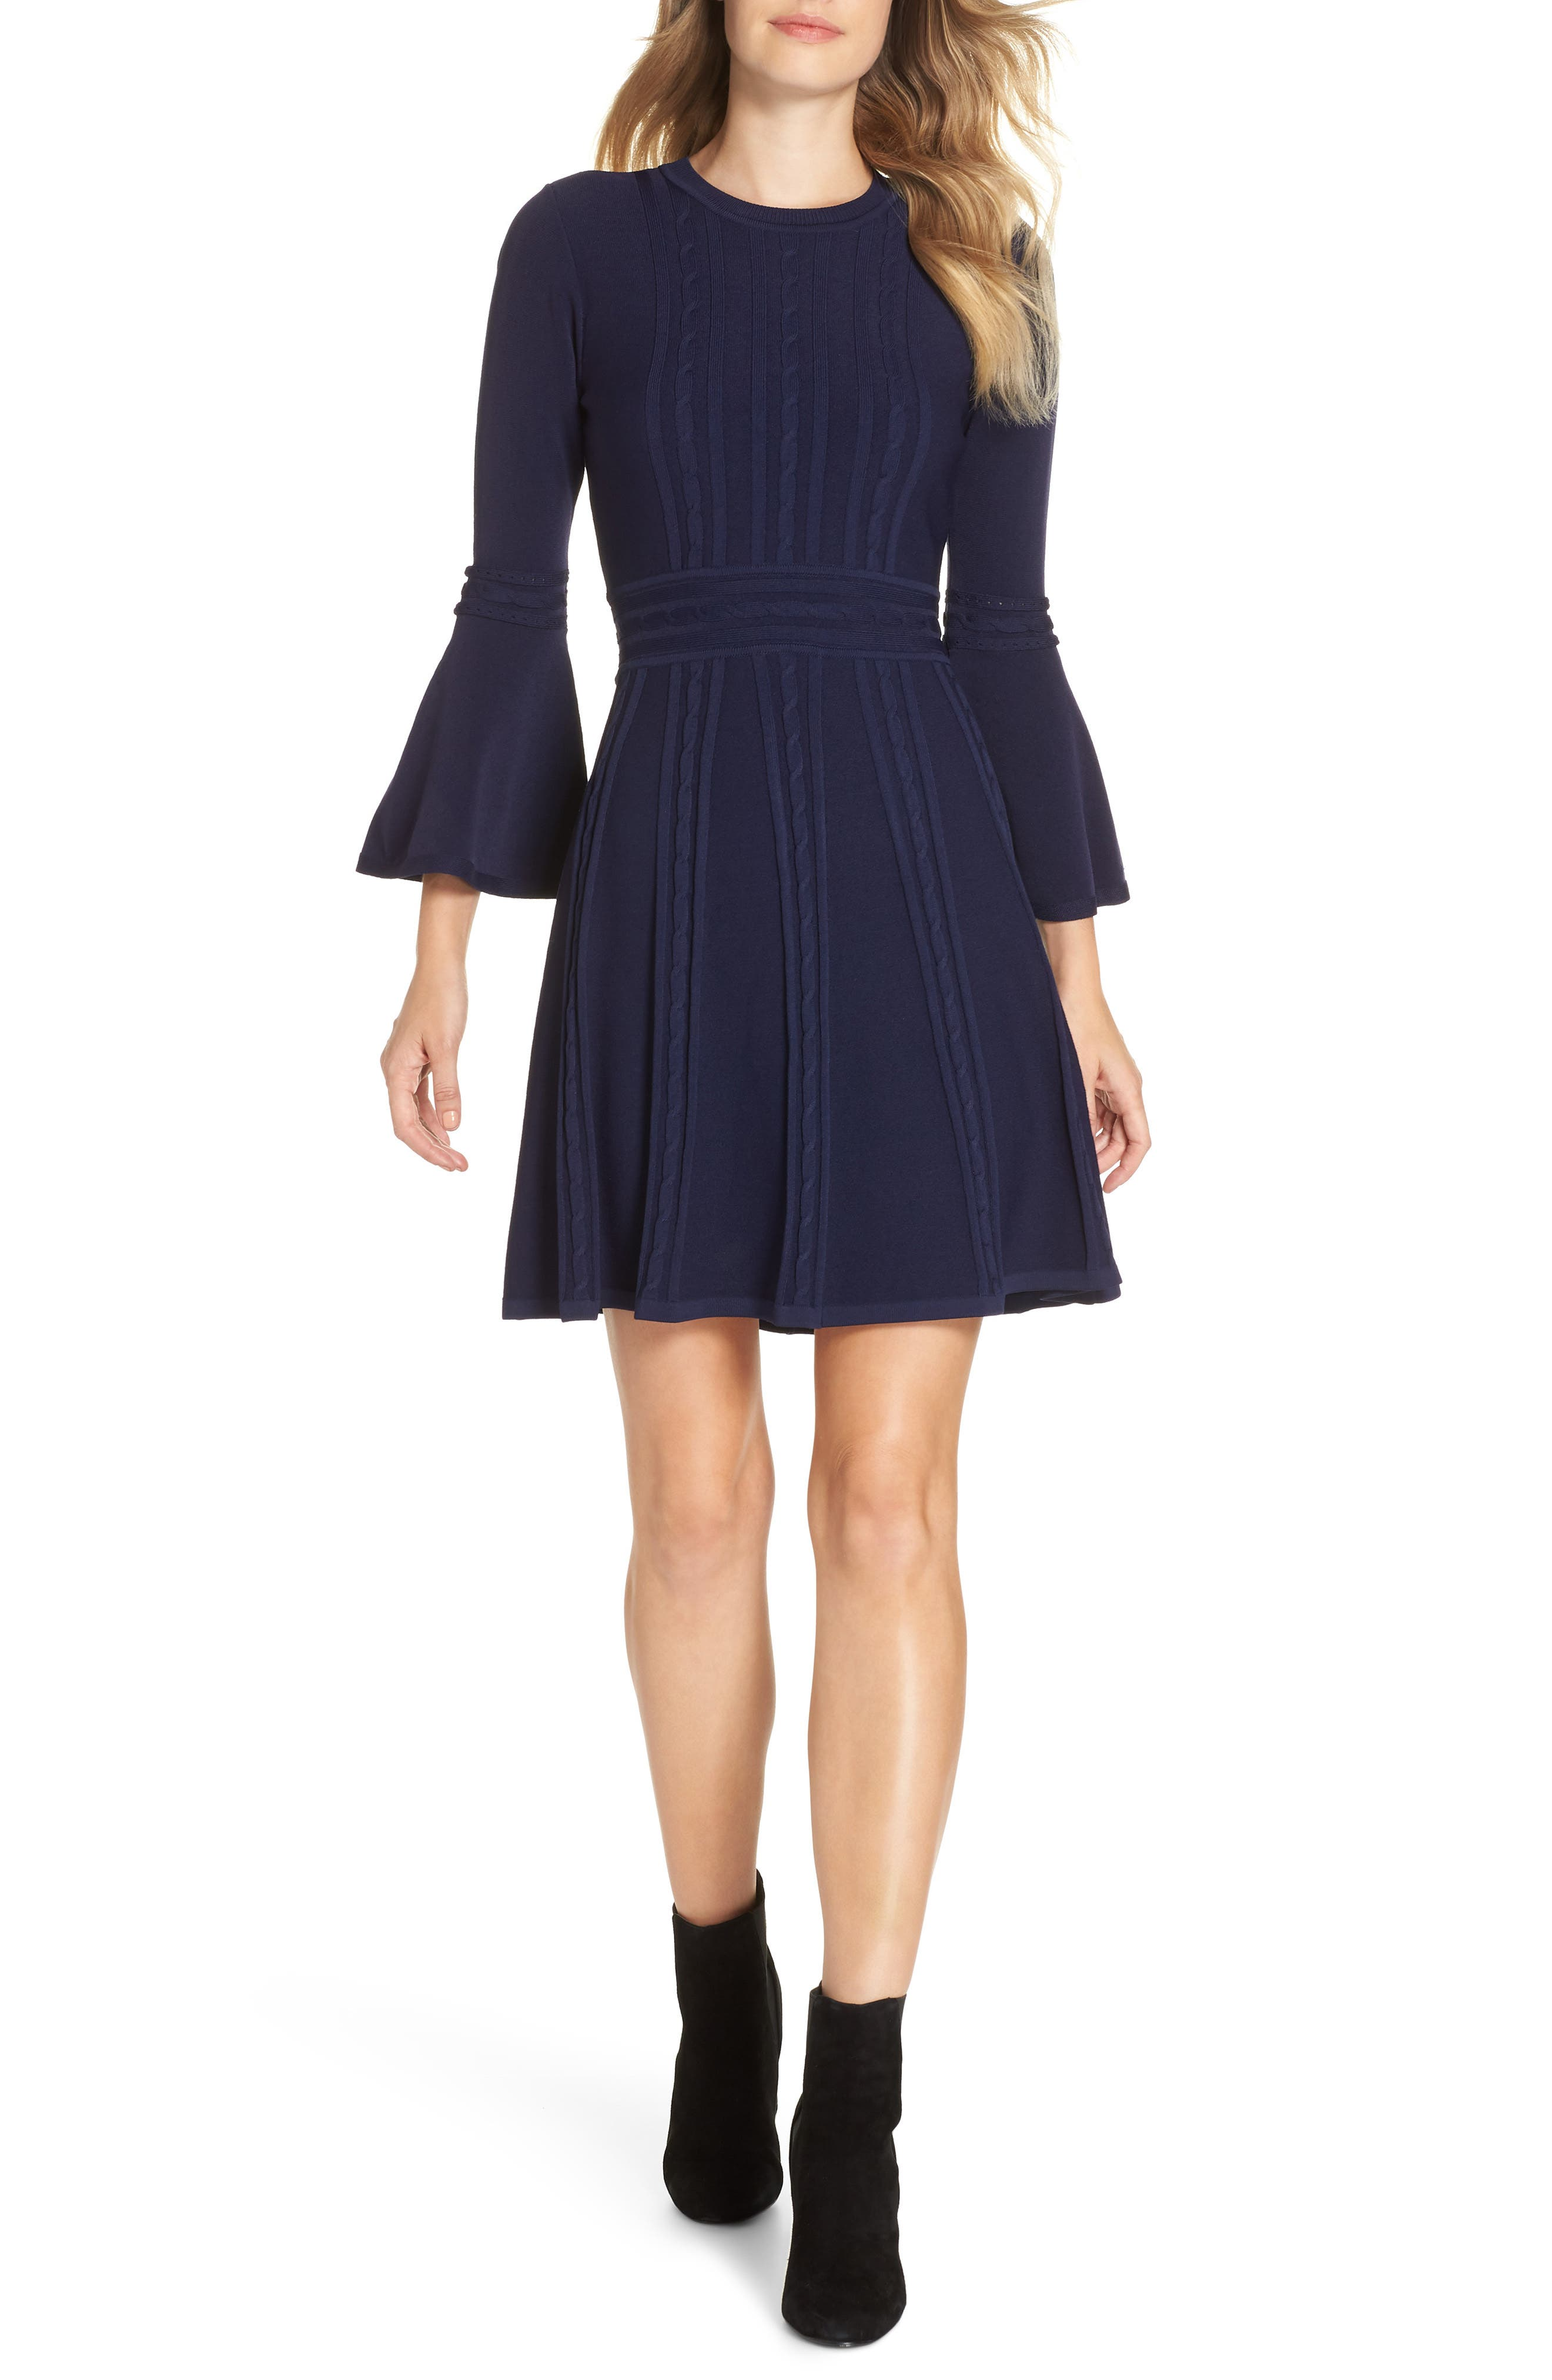 ELIZA J, Bell Sleeve Sweater Dress, Main thumbnail 1, color, 410